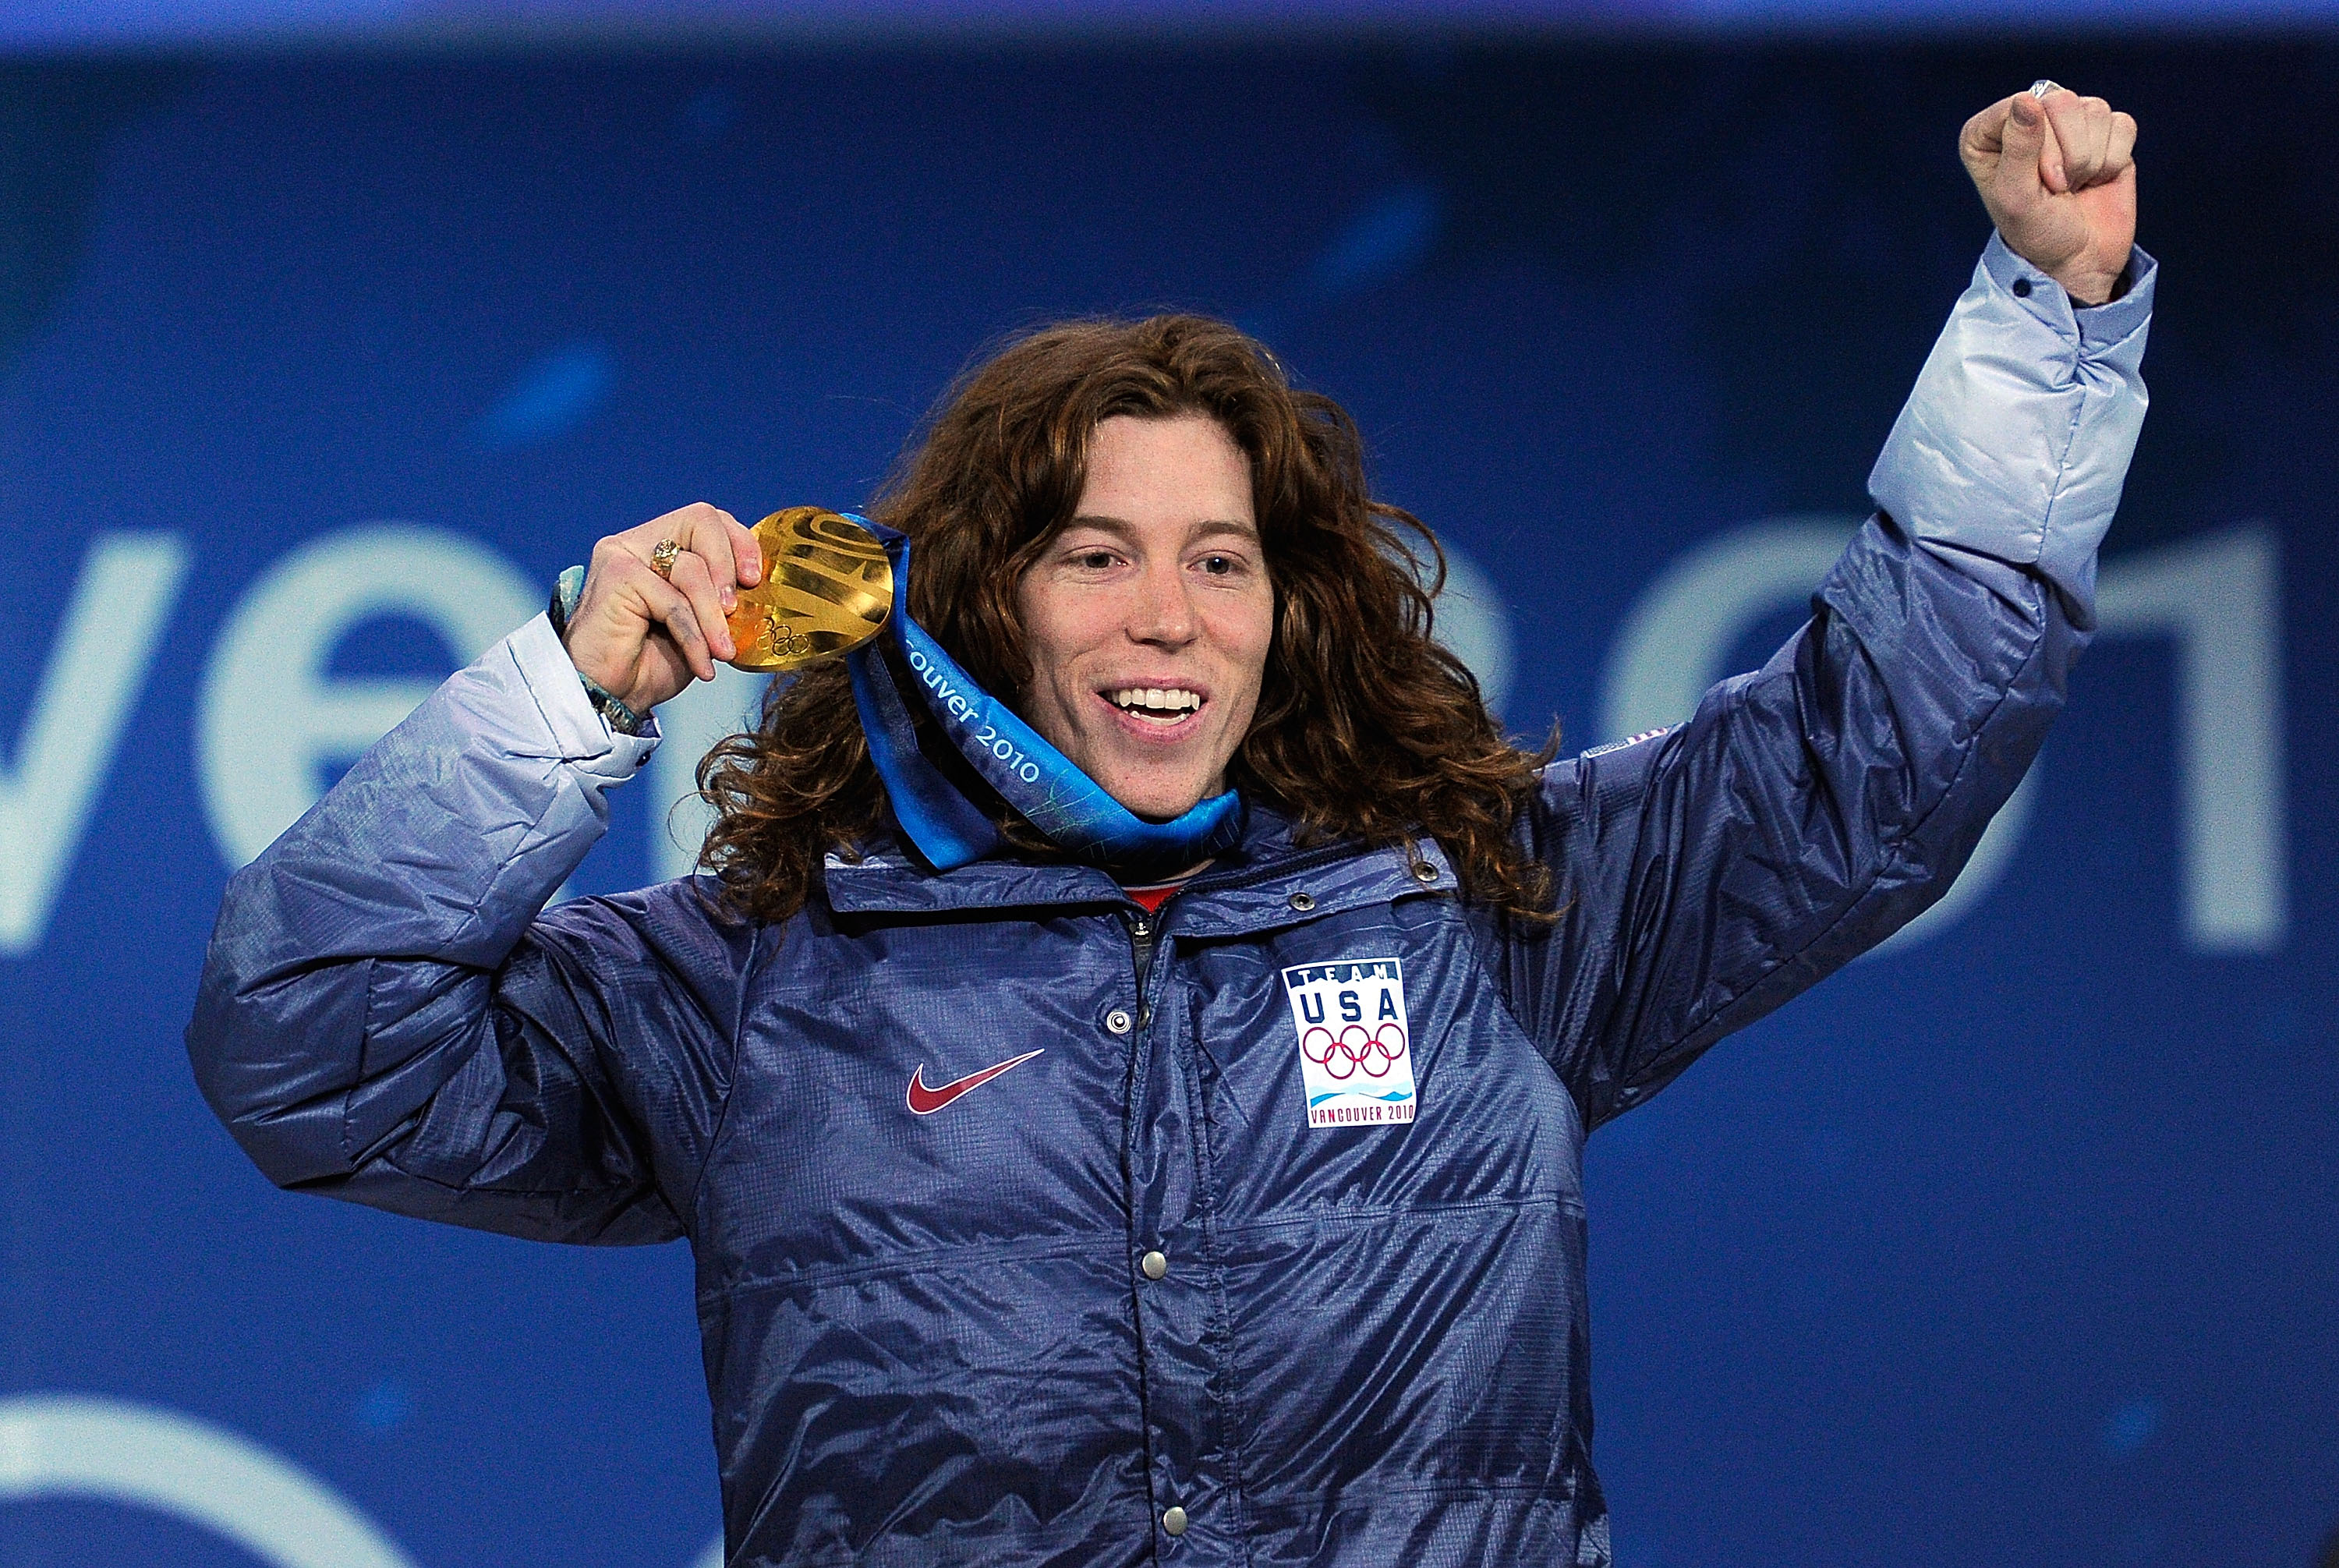 VANCOUVER, BC - FEBRUARY 18:  Shaun White of United States celebrates his gold medal during the medal ceremony for the Men�s Halfpipe on day 7 of the Vancouver 2010 Winter Olympics at BC Place on February 18, 2010 in Vancouver, Canada.  (Photo by Kevork D